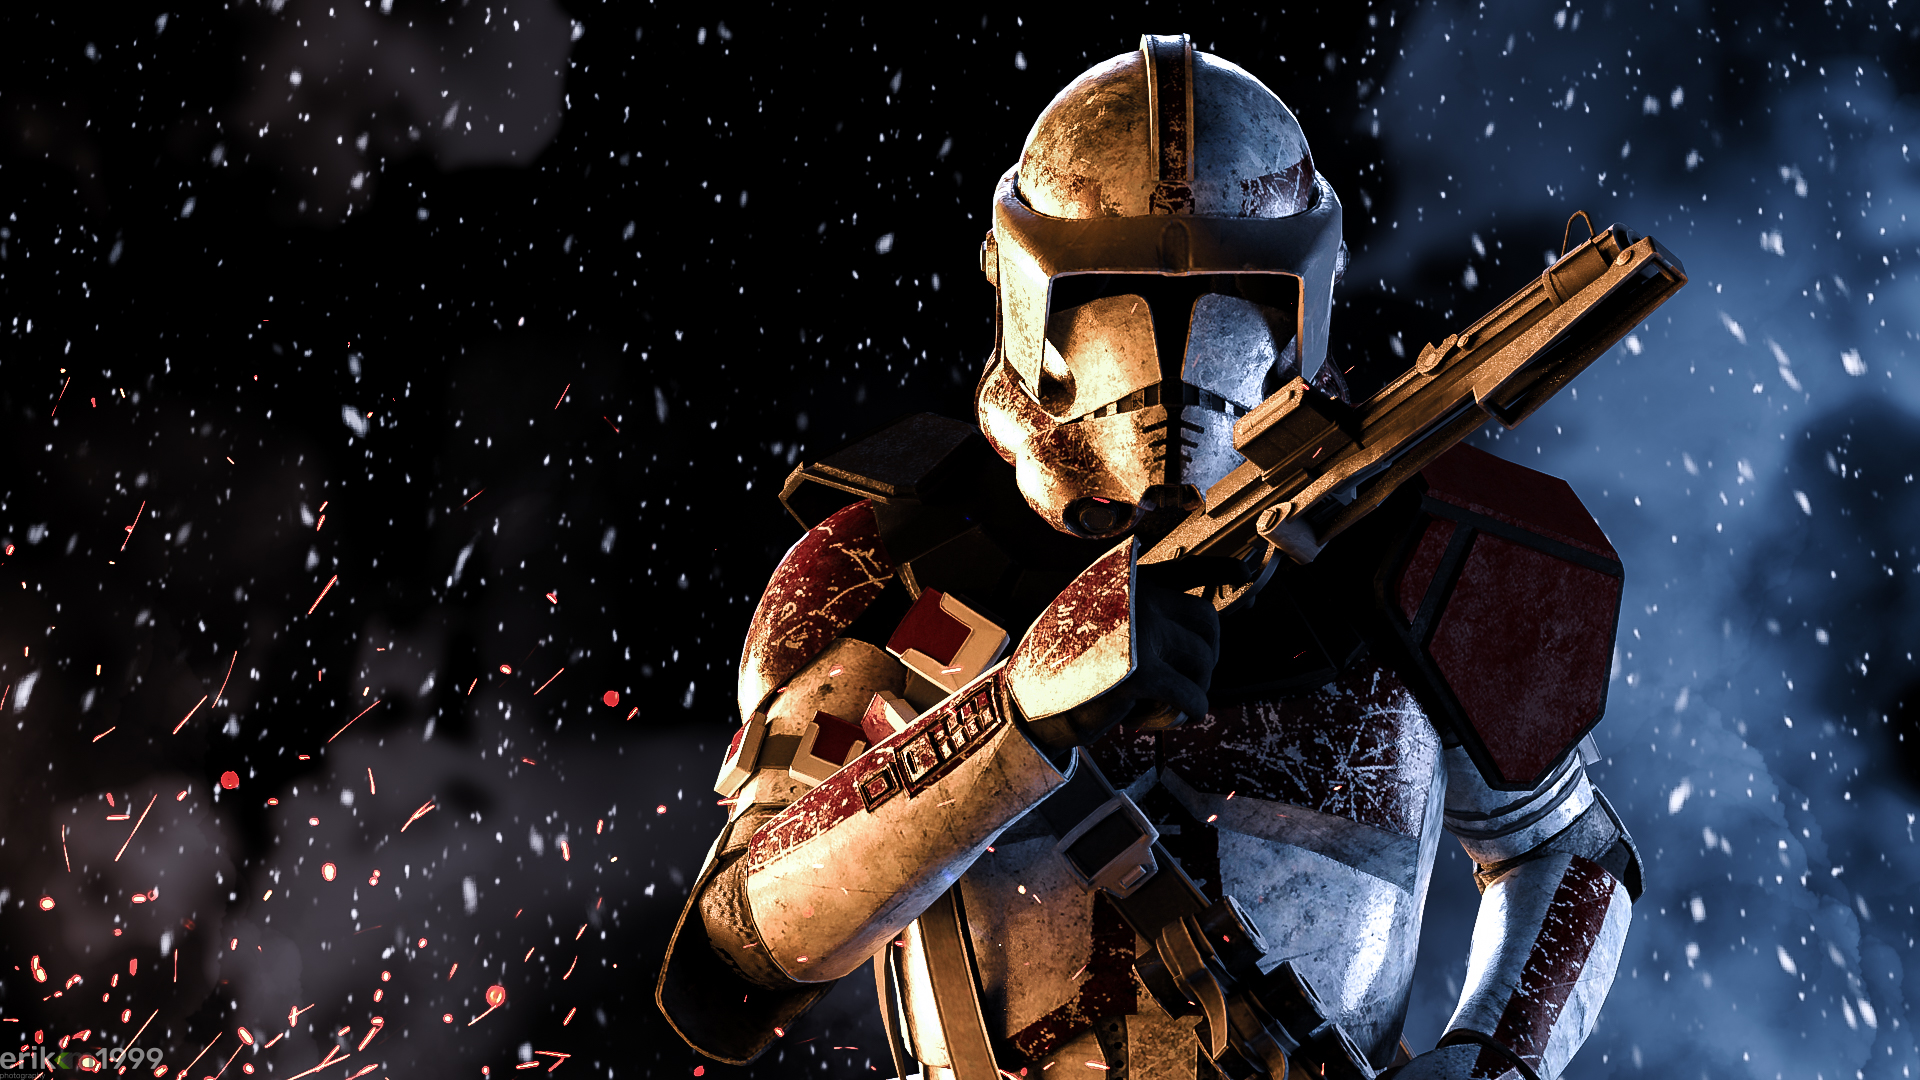 Clone Trooper Star Wars Hd Hd Movies 4k Wallpapers Images Backgrounds Photos And Pictures